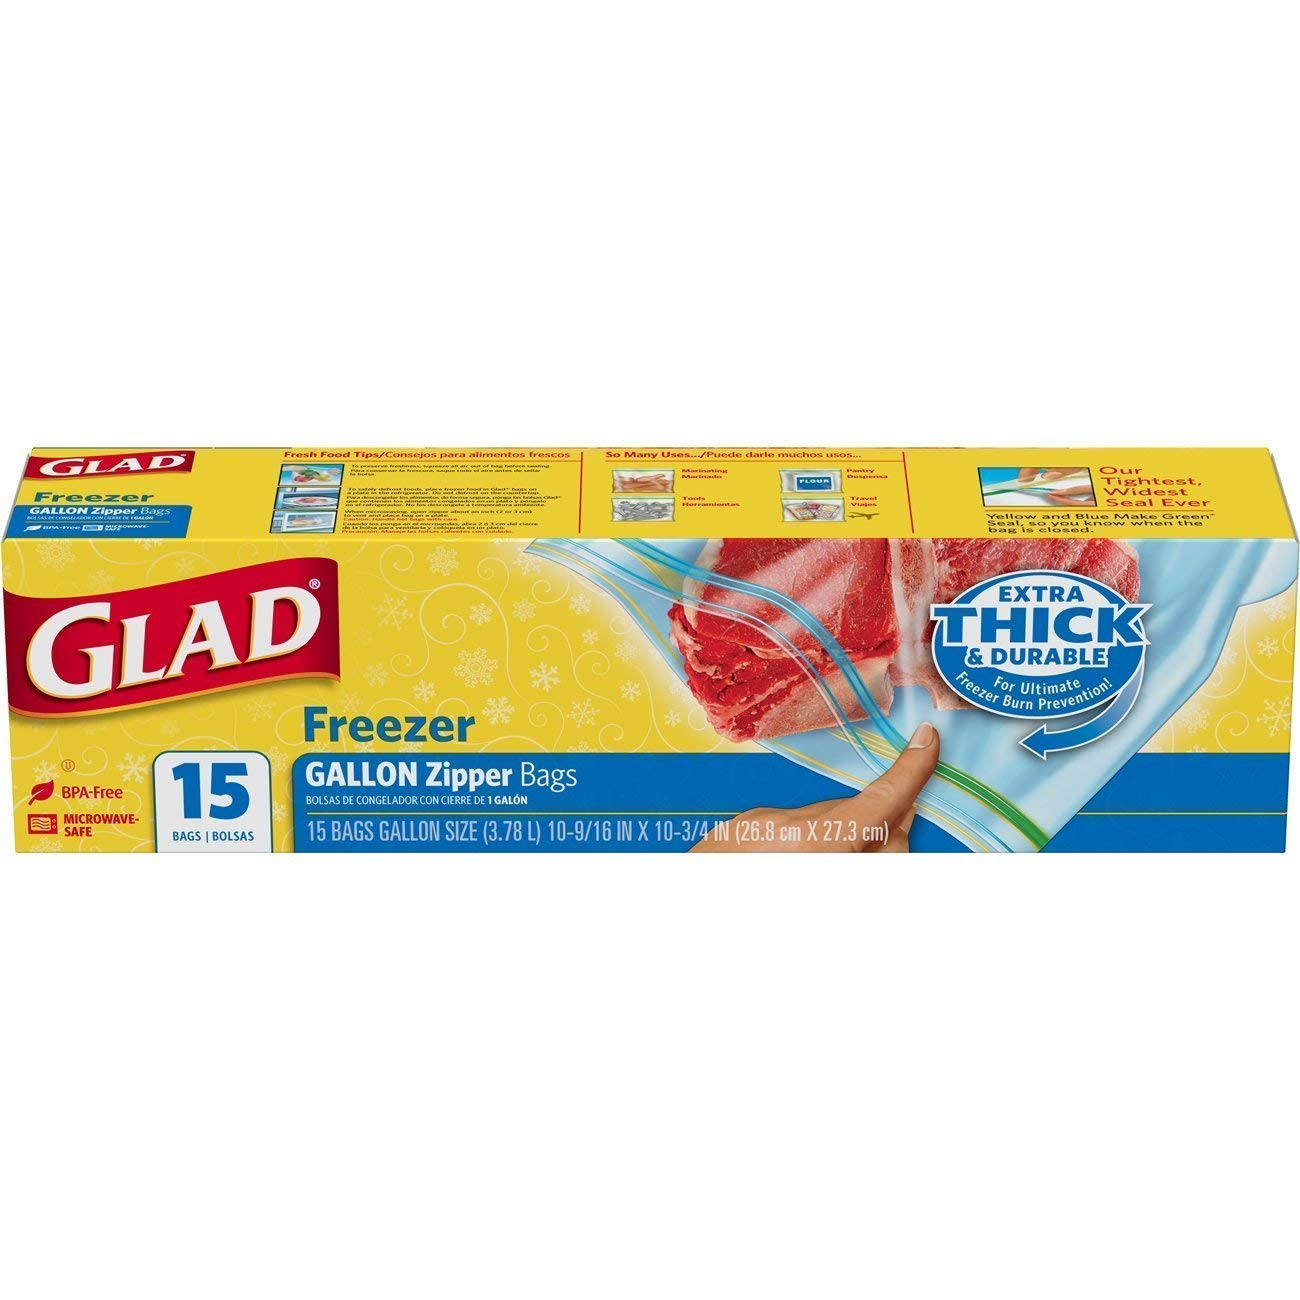 Glad Combo Freezer Bags, 15 Count Gallon Size (Large 10.56